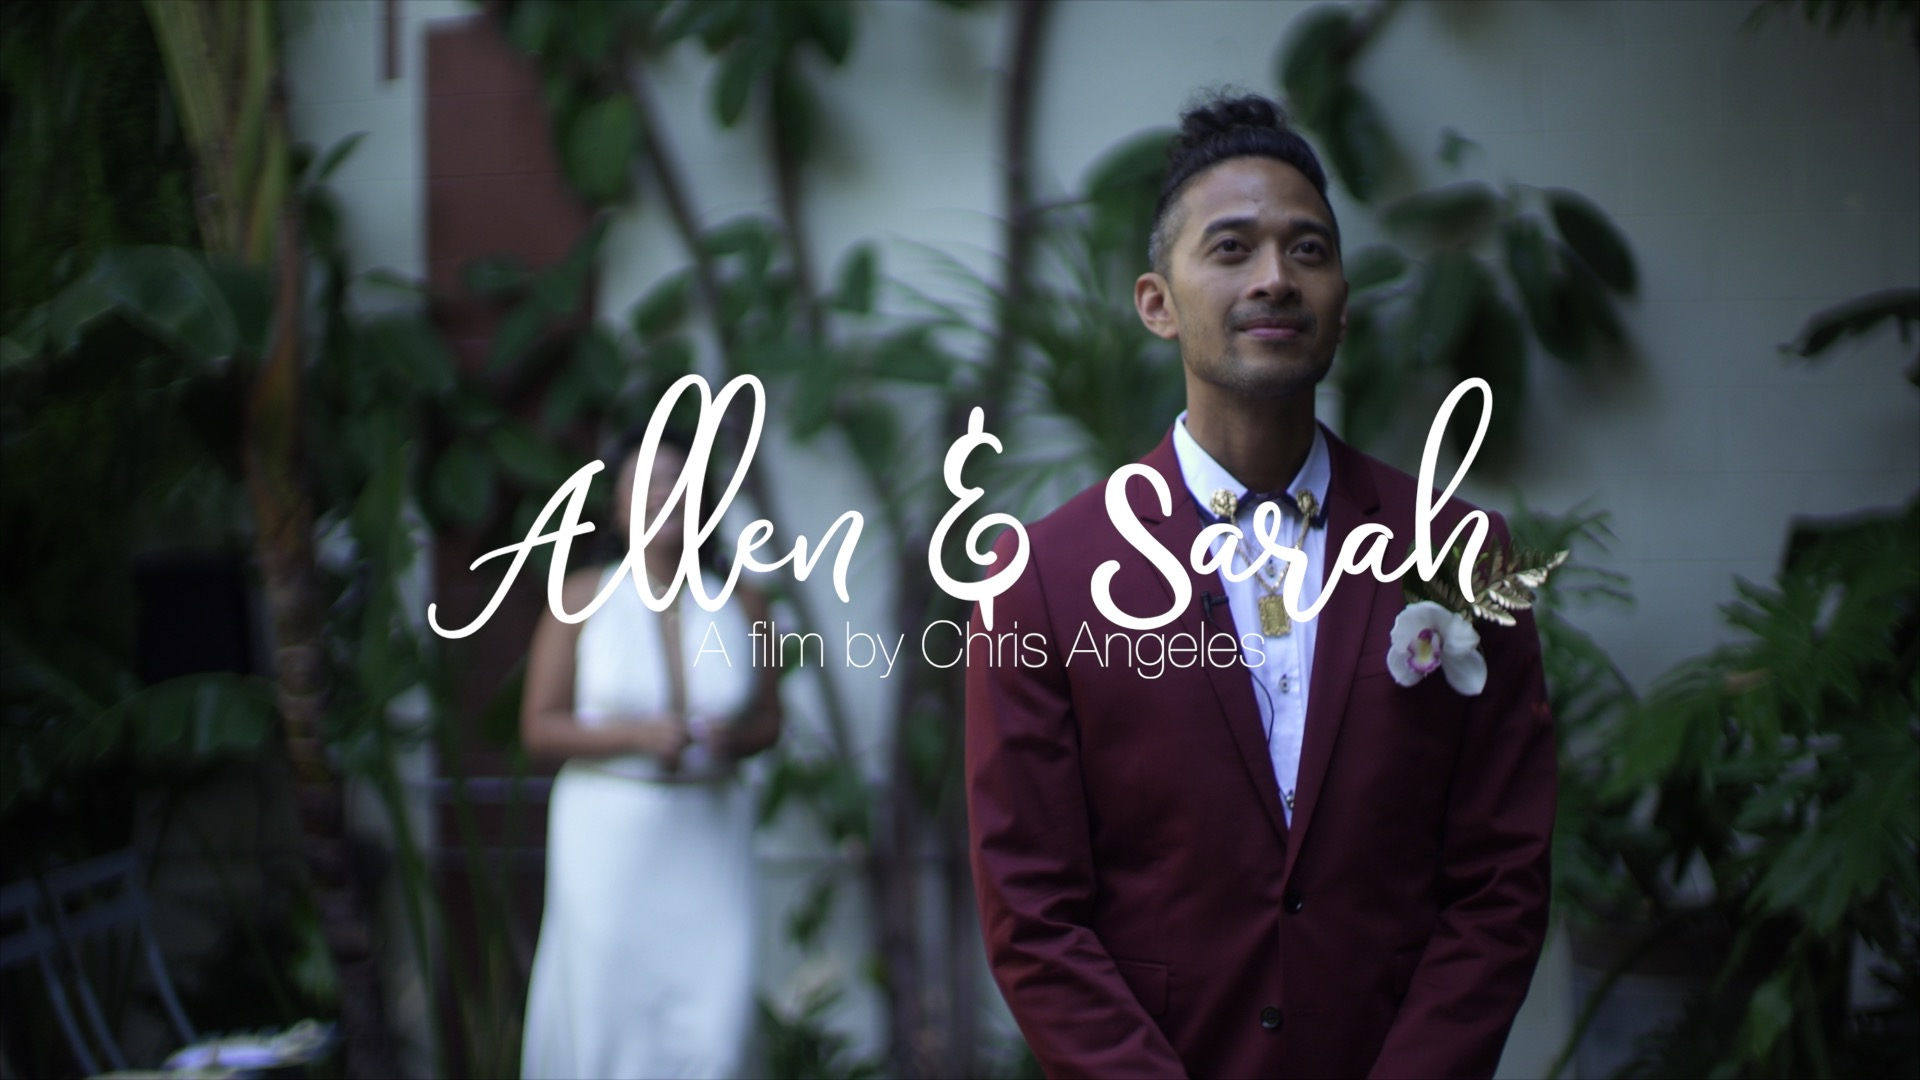 Allen + Sarah | Los Angeles, California | Th Milwick